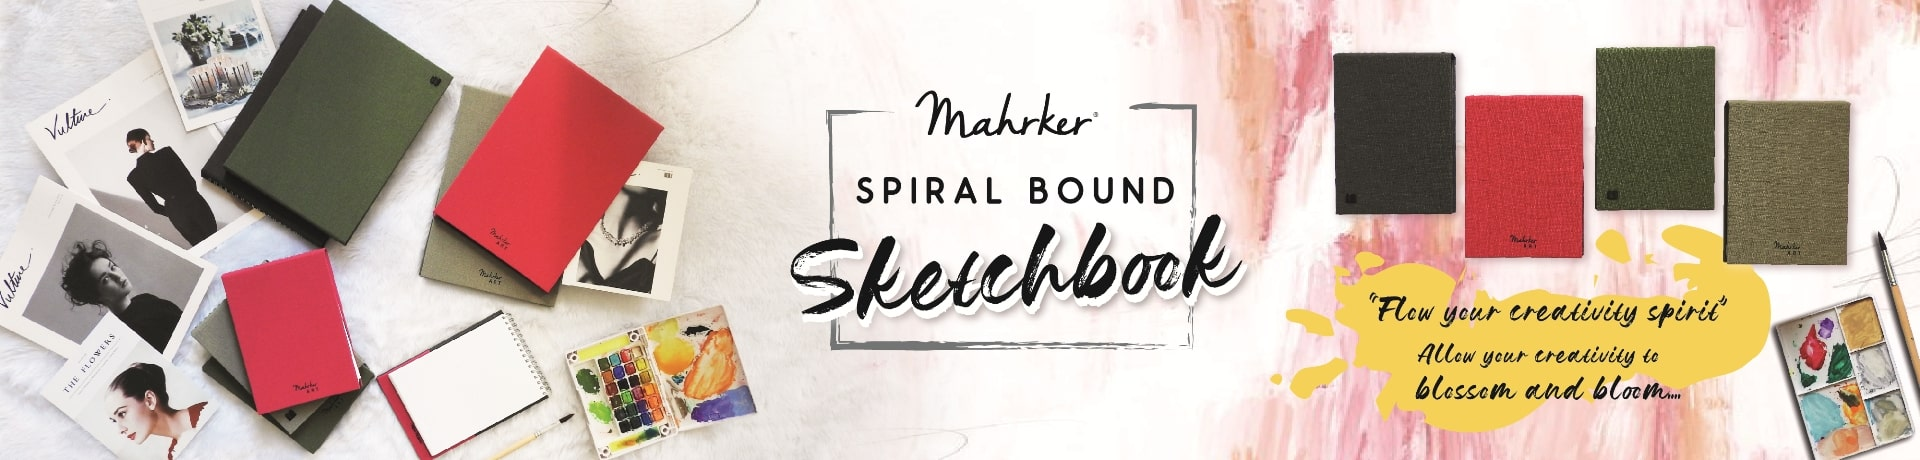 Mahrker Sketchbooks